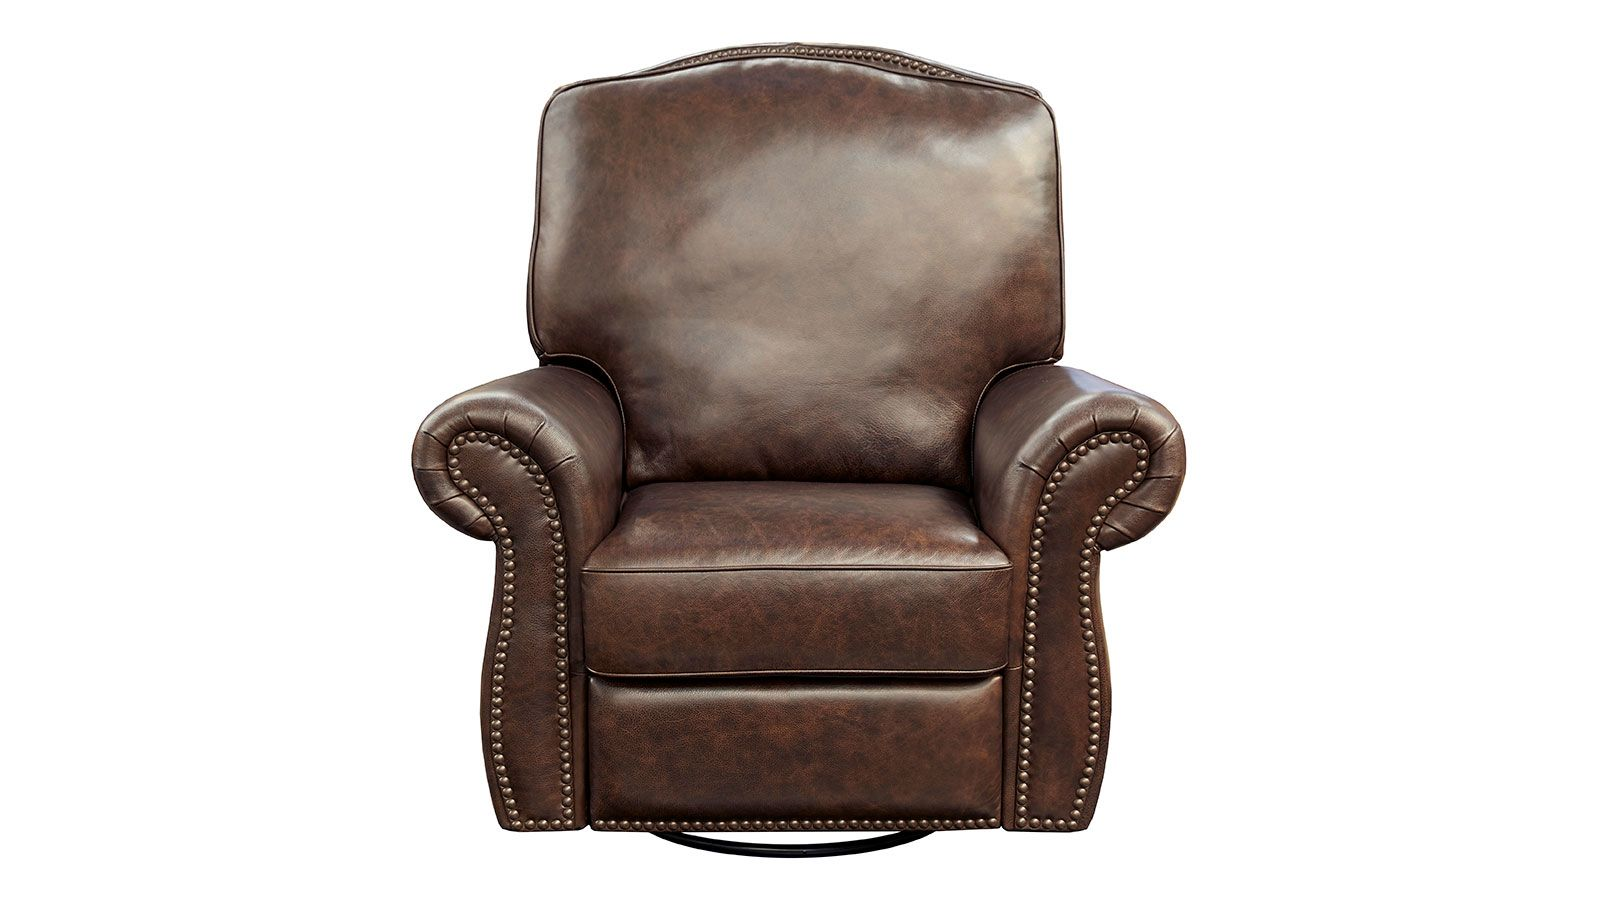 Swivel Rocker Recliner Chair Silverado Leather Swivel Rocker Recliner